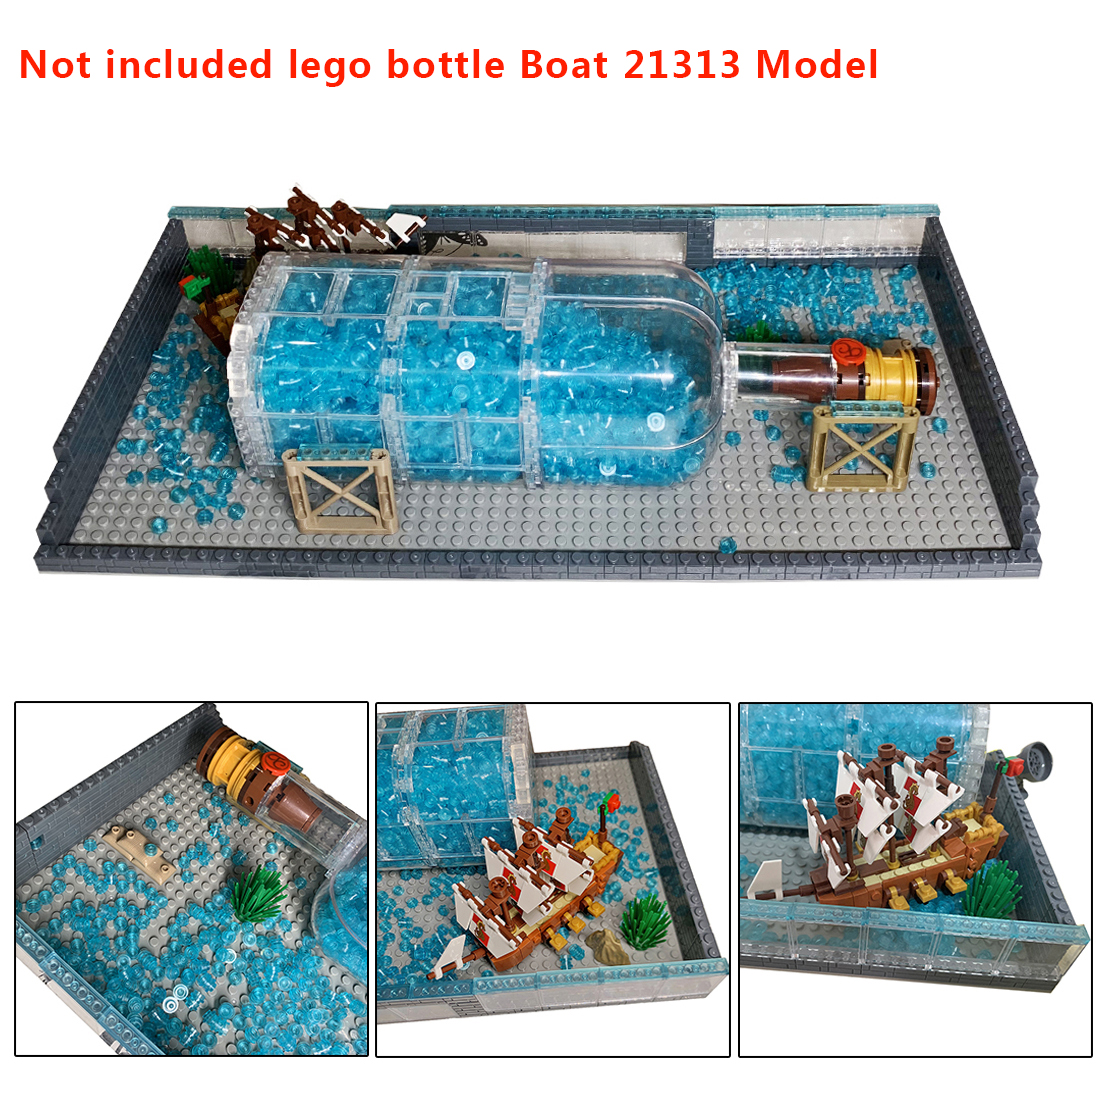 MODIKER Seawater Baseplate MOC Small Particle Building Upgrade Kit for Ship in a Bottle <font><b>21313</b></font> Without Bottle Model image